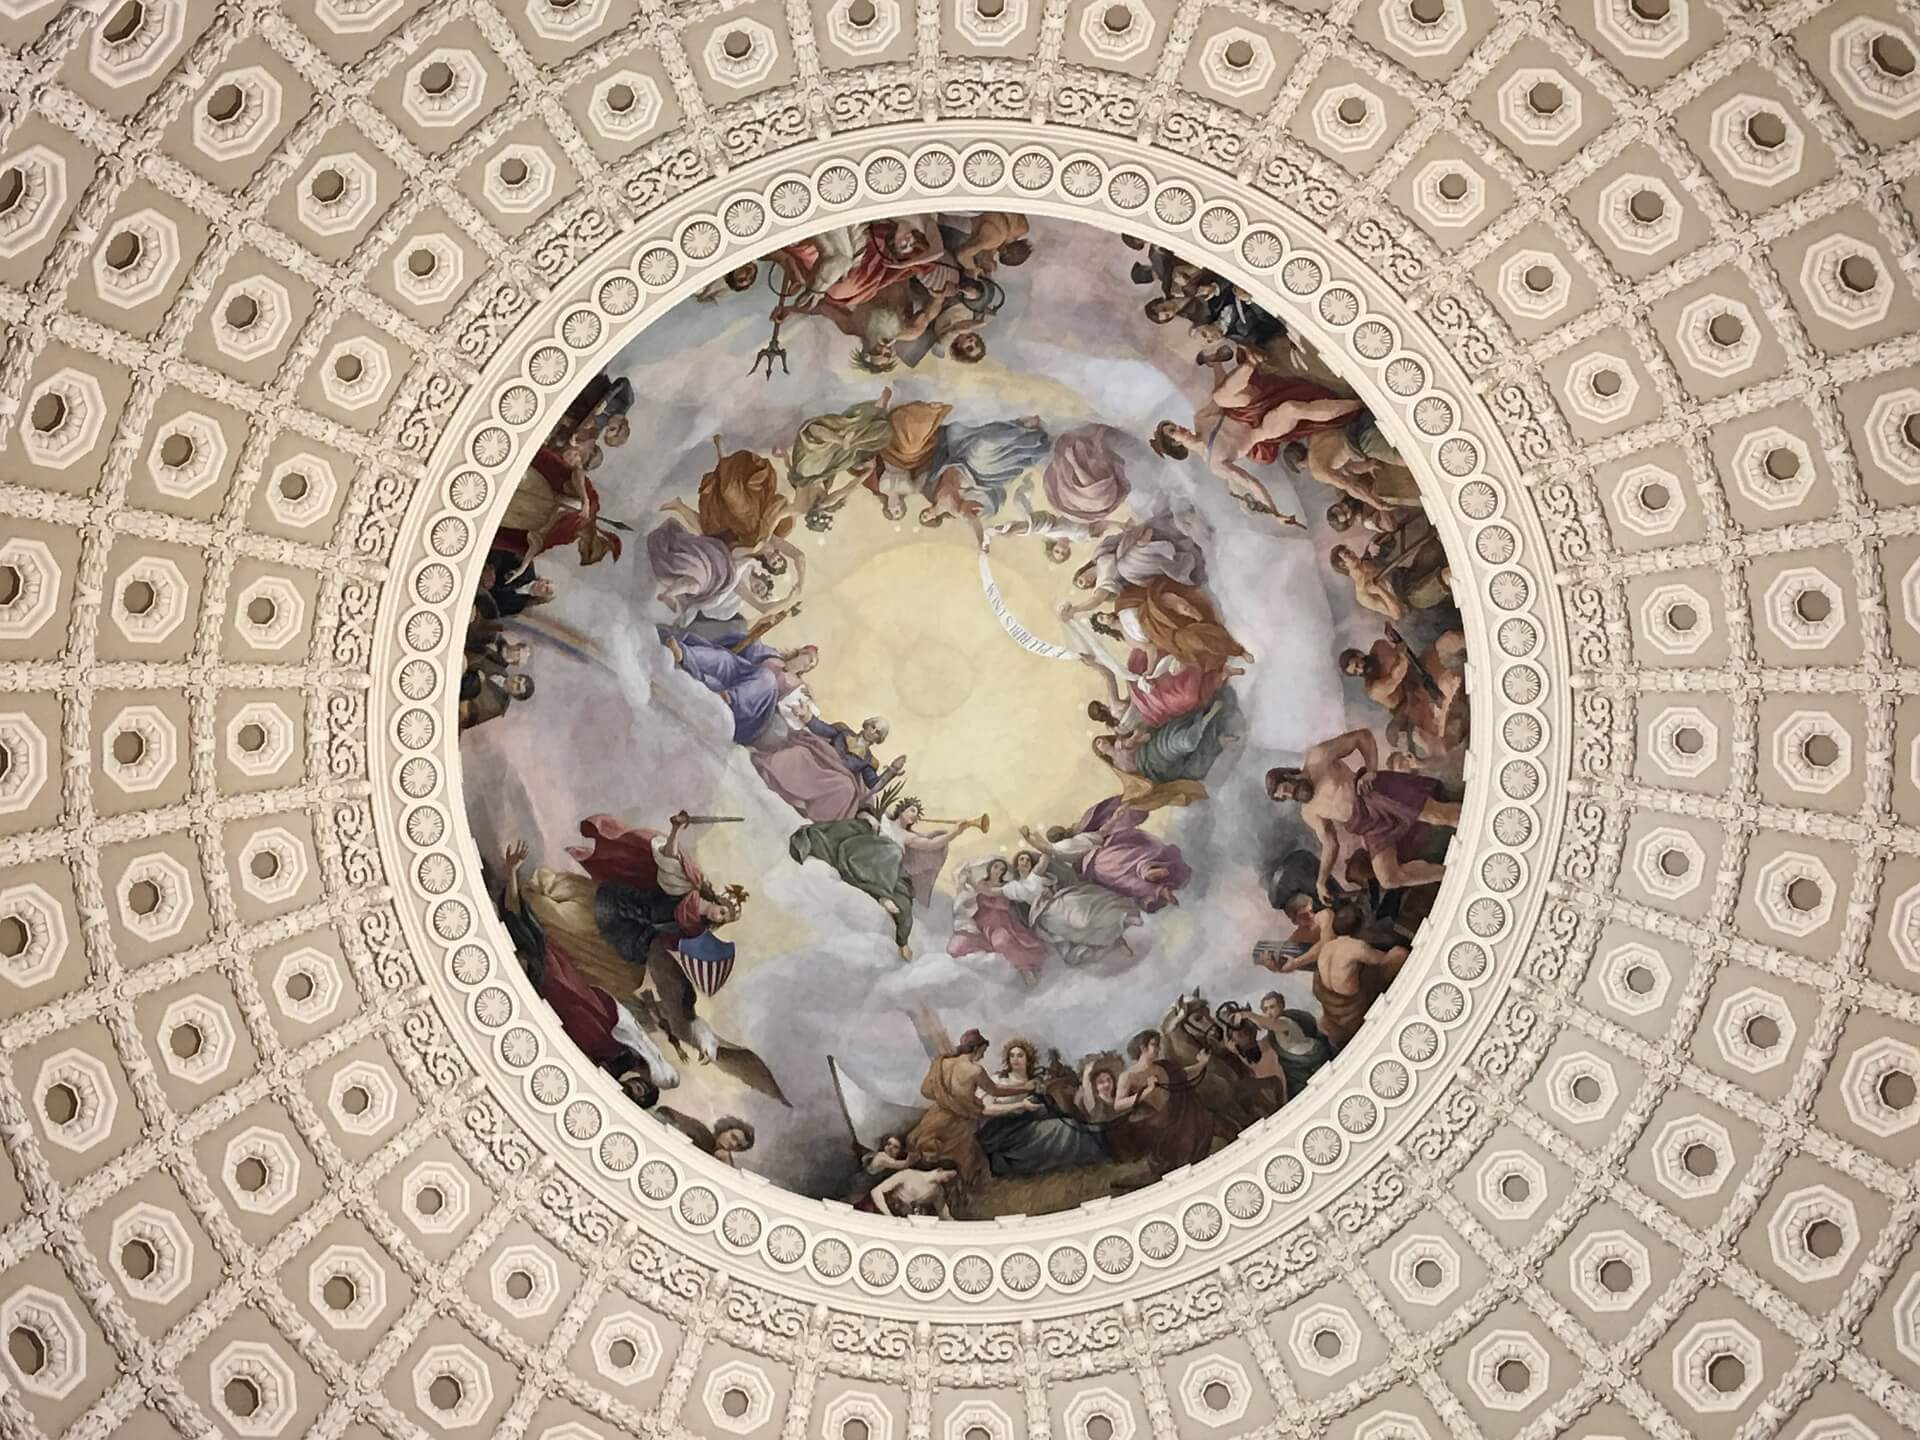 United States Capitol Building rotunda ceiling painting